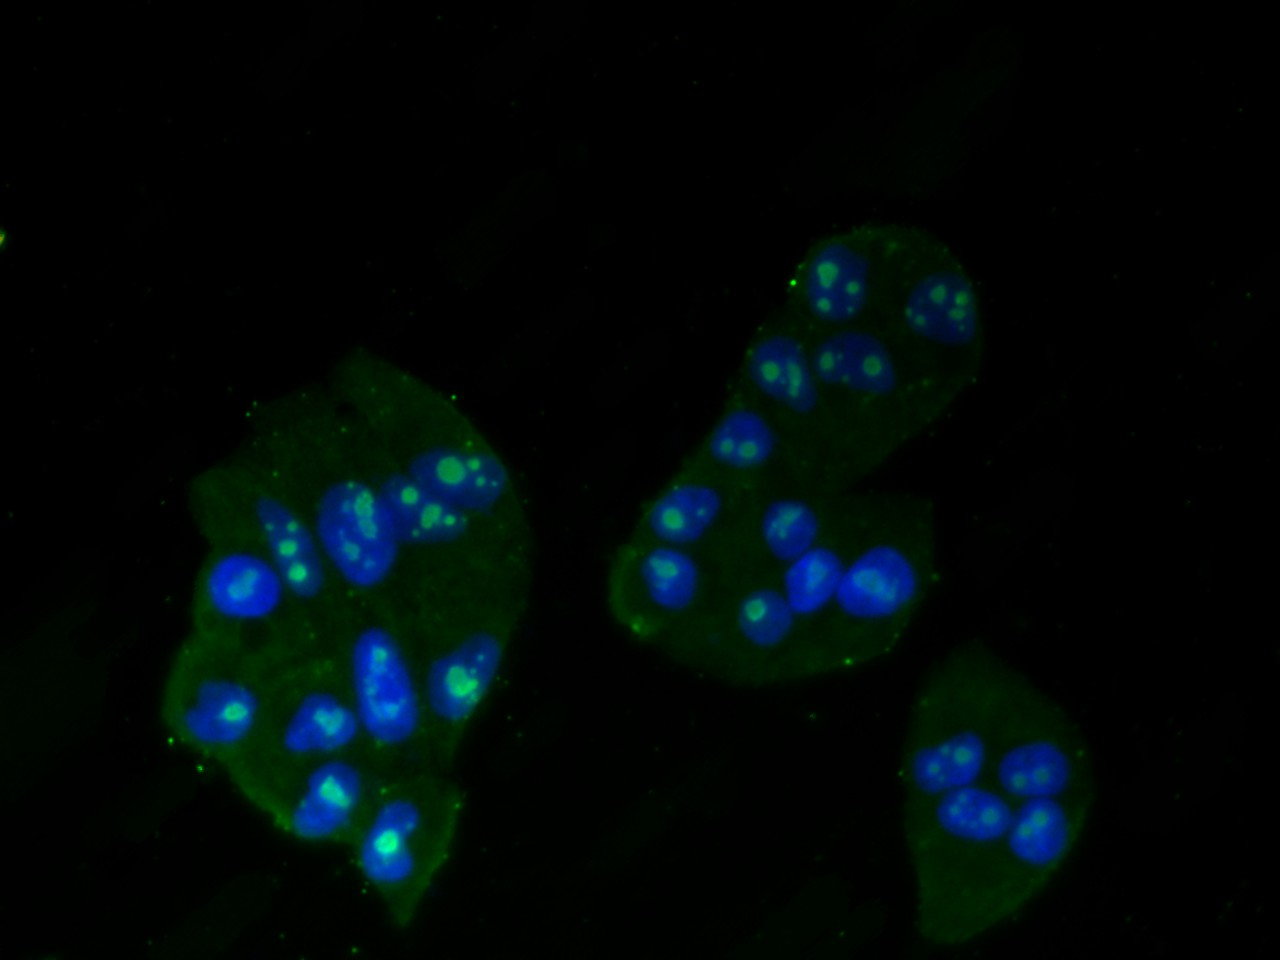 ICC staining of MSH2 in Hela cells (green). Formalin fixed cells were permeabilized with 0.1% Triton X-100 in TBS for 10 minutes at room temperature and blocked with 1% Blocker BSA for 15 minutes at room temperature. Cells were probed with the primary antibody (R1510-32, 1/50) for 1 hour at room temperature, washed with PBS. Alexa Fluor®488 Goat anti-Rabbit IgG was used as the secondary antibody at 1/1,000 dilution. The nuclear counter stain is DAPI (blue).